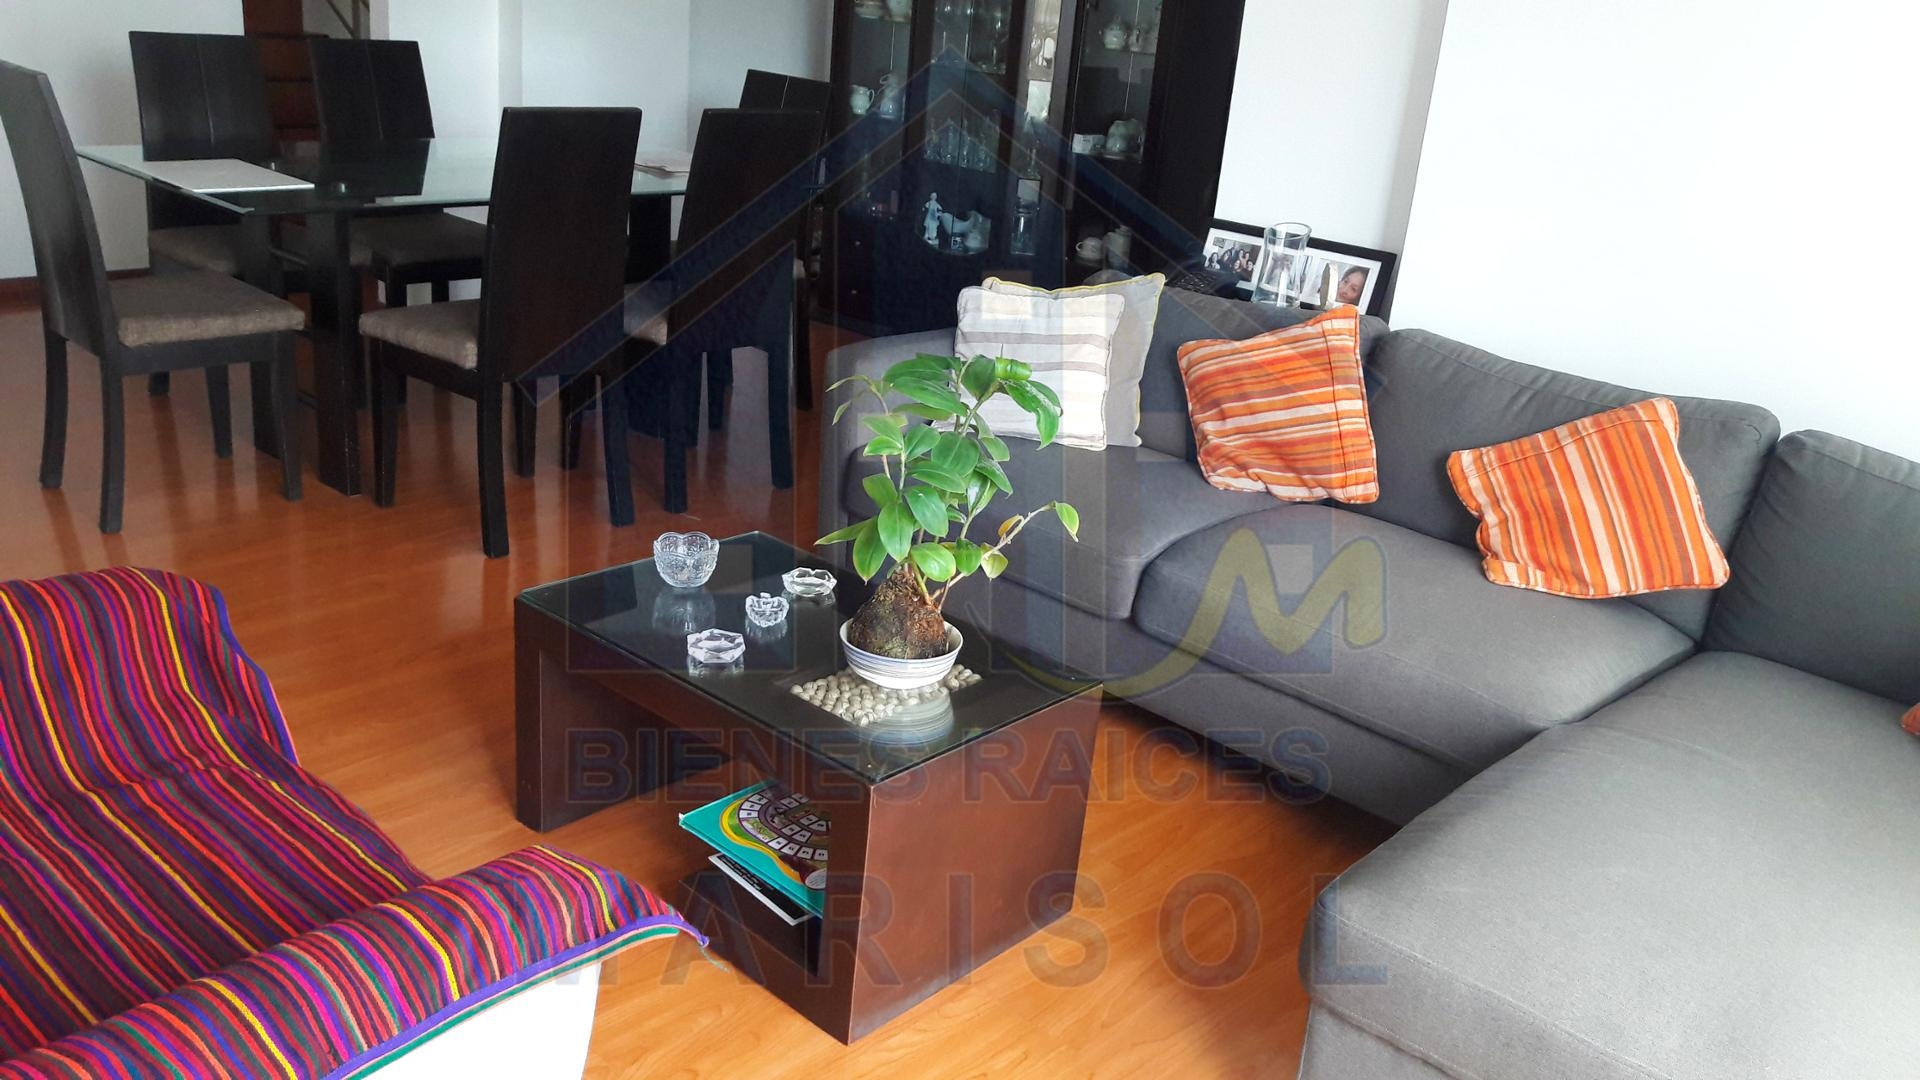 Venta Duplex Pet Friendly 3 Dorm - Áreas Comunes - SAN BORJA